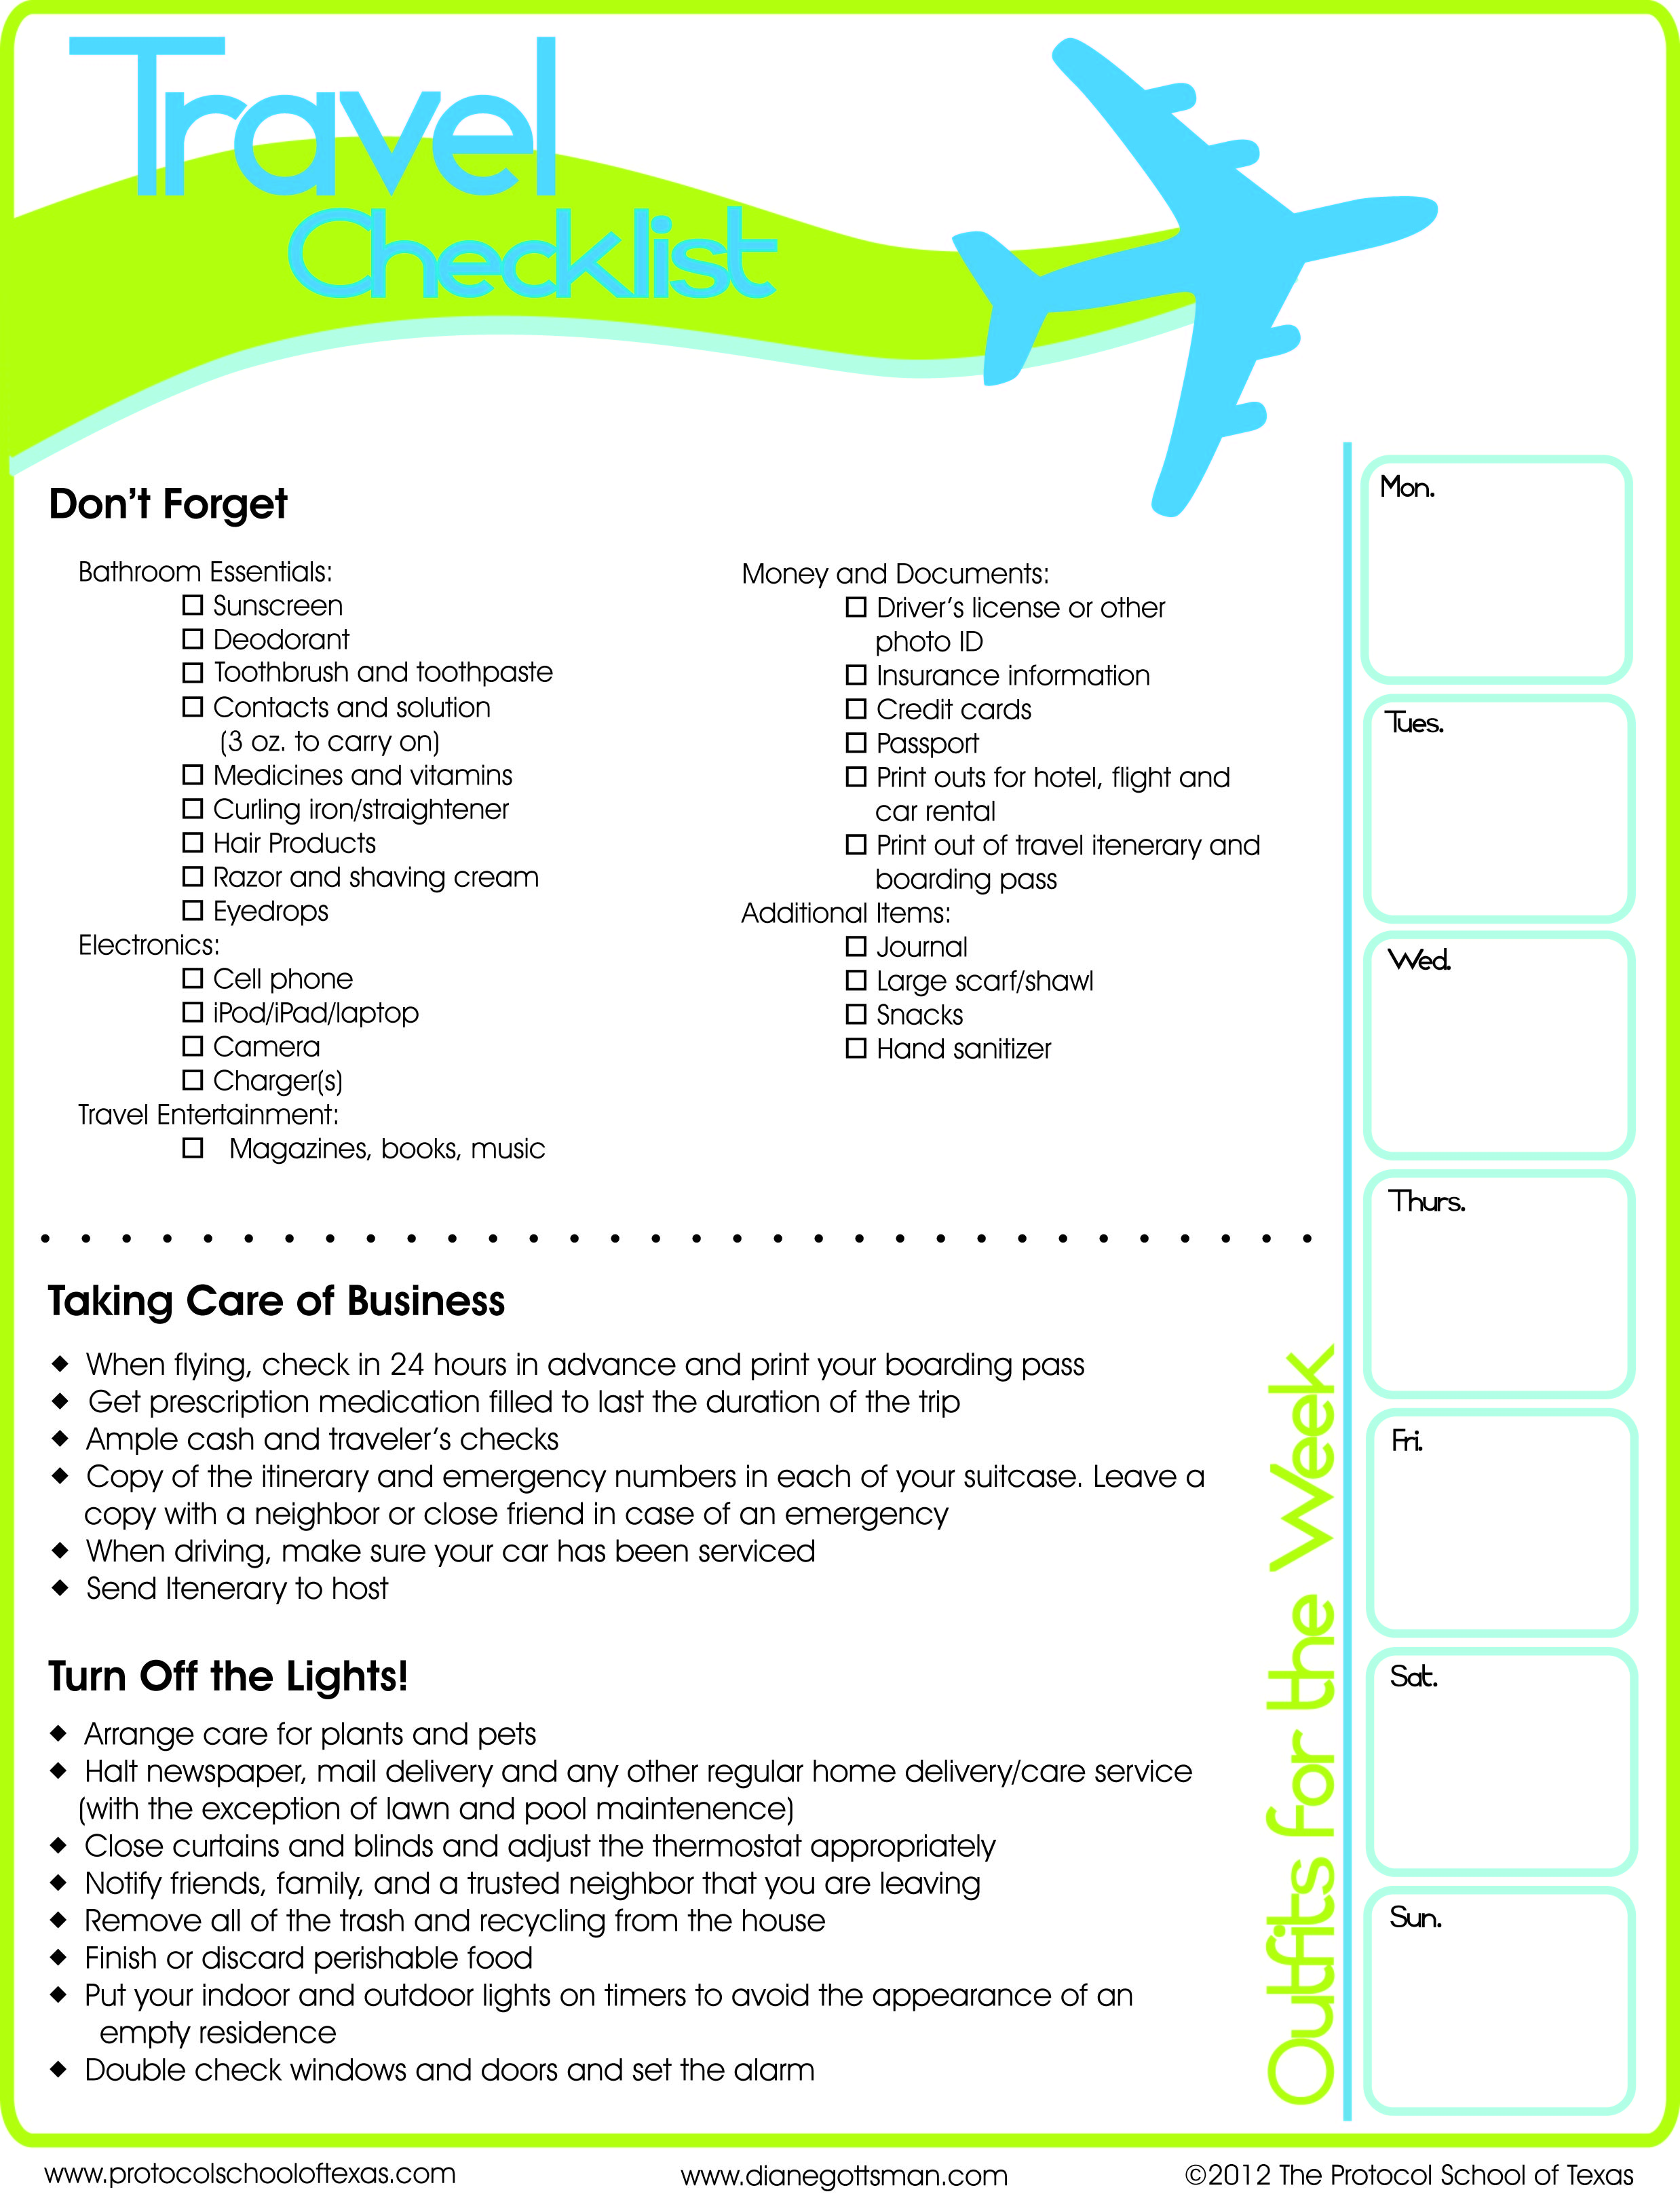 5 Images of International Travel Checklist Printable